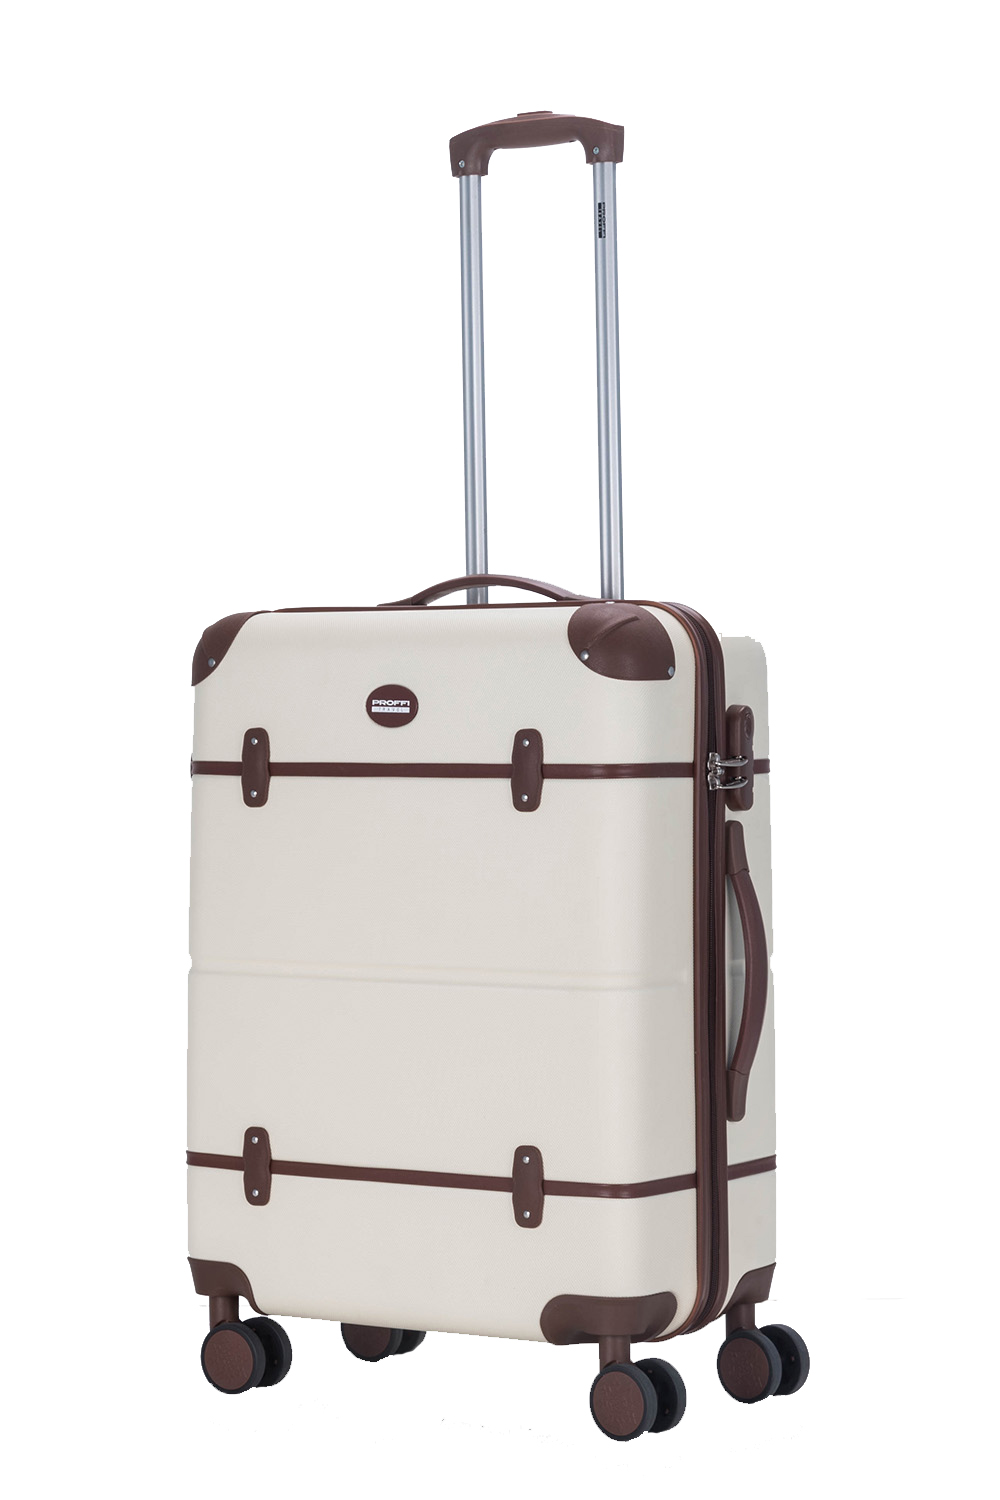 Plastic suitcase PROFFI TRAVEL Tour Vintage PH9727, with combination lock, beige, S